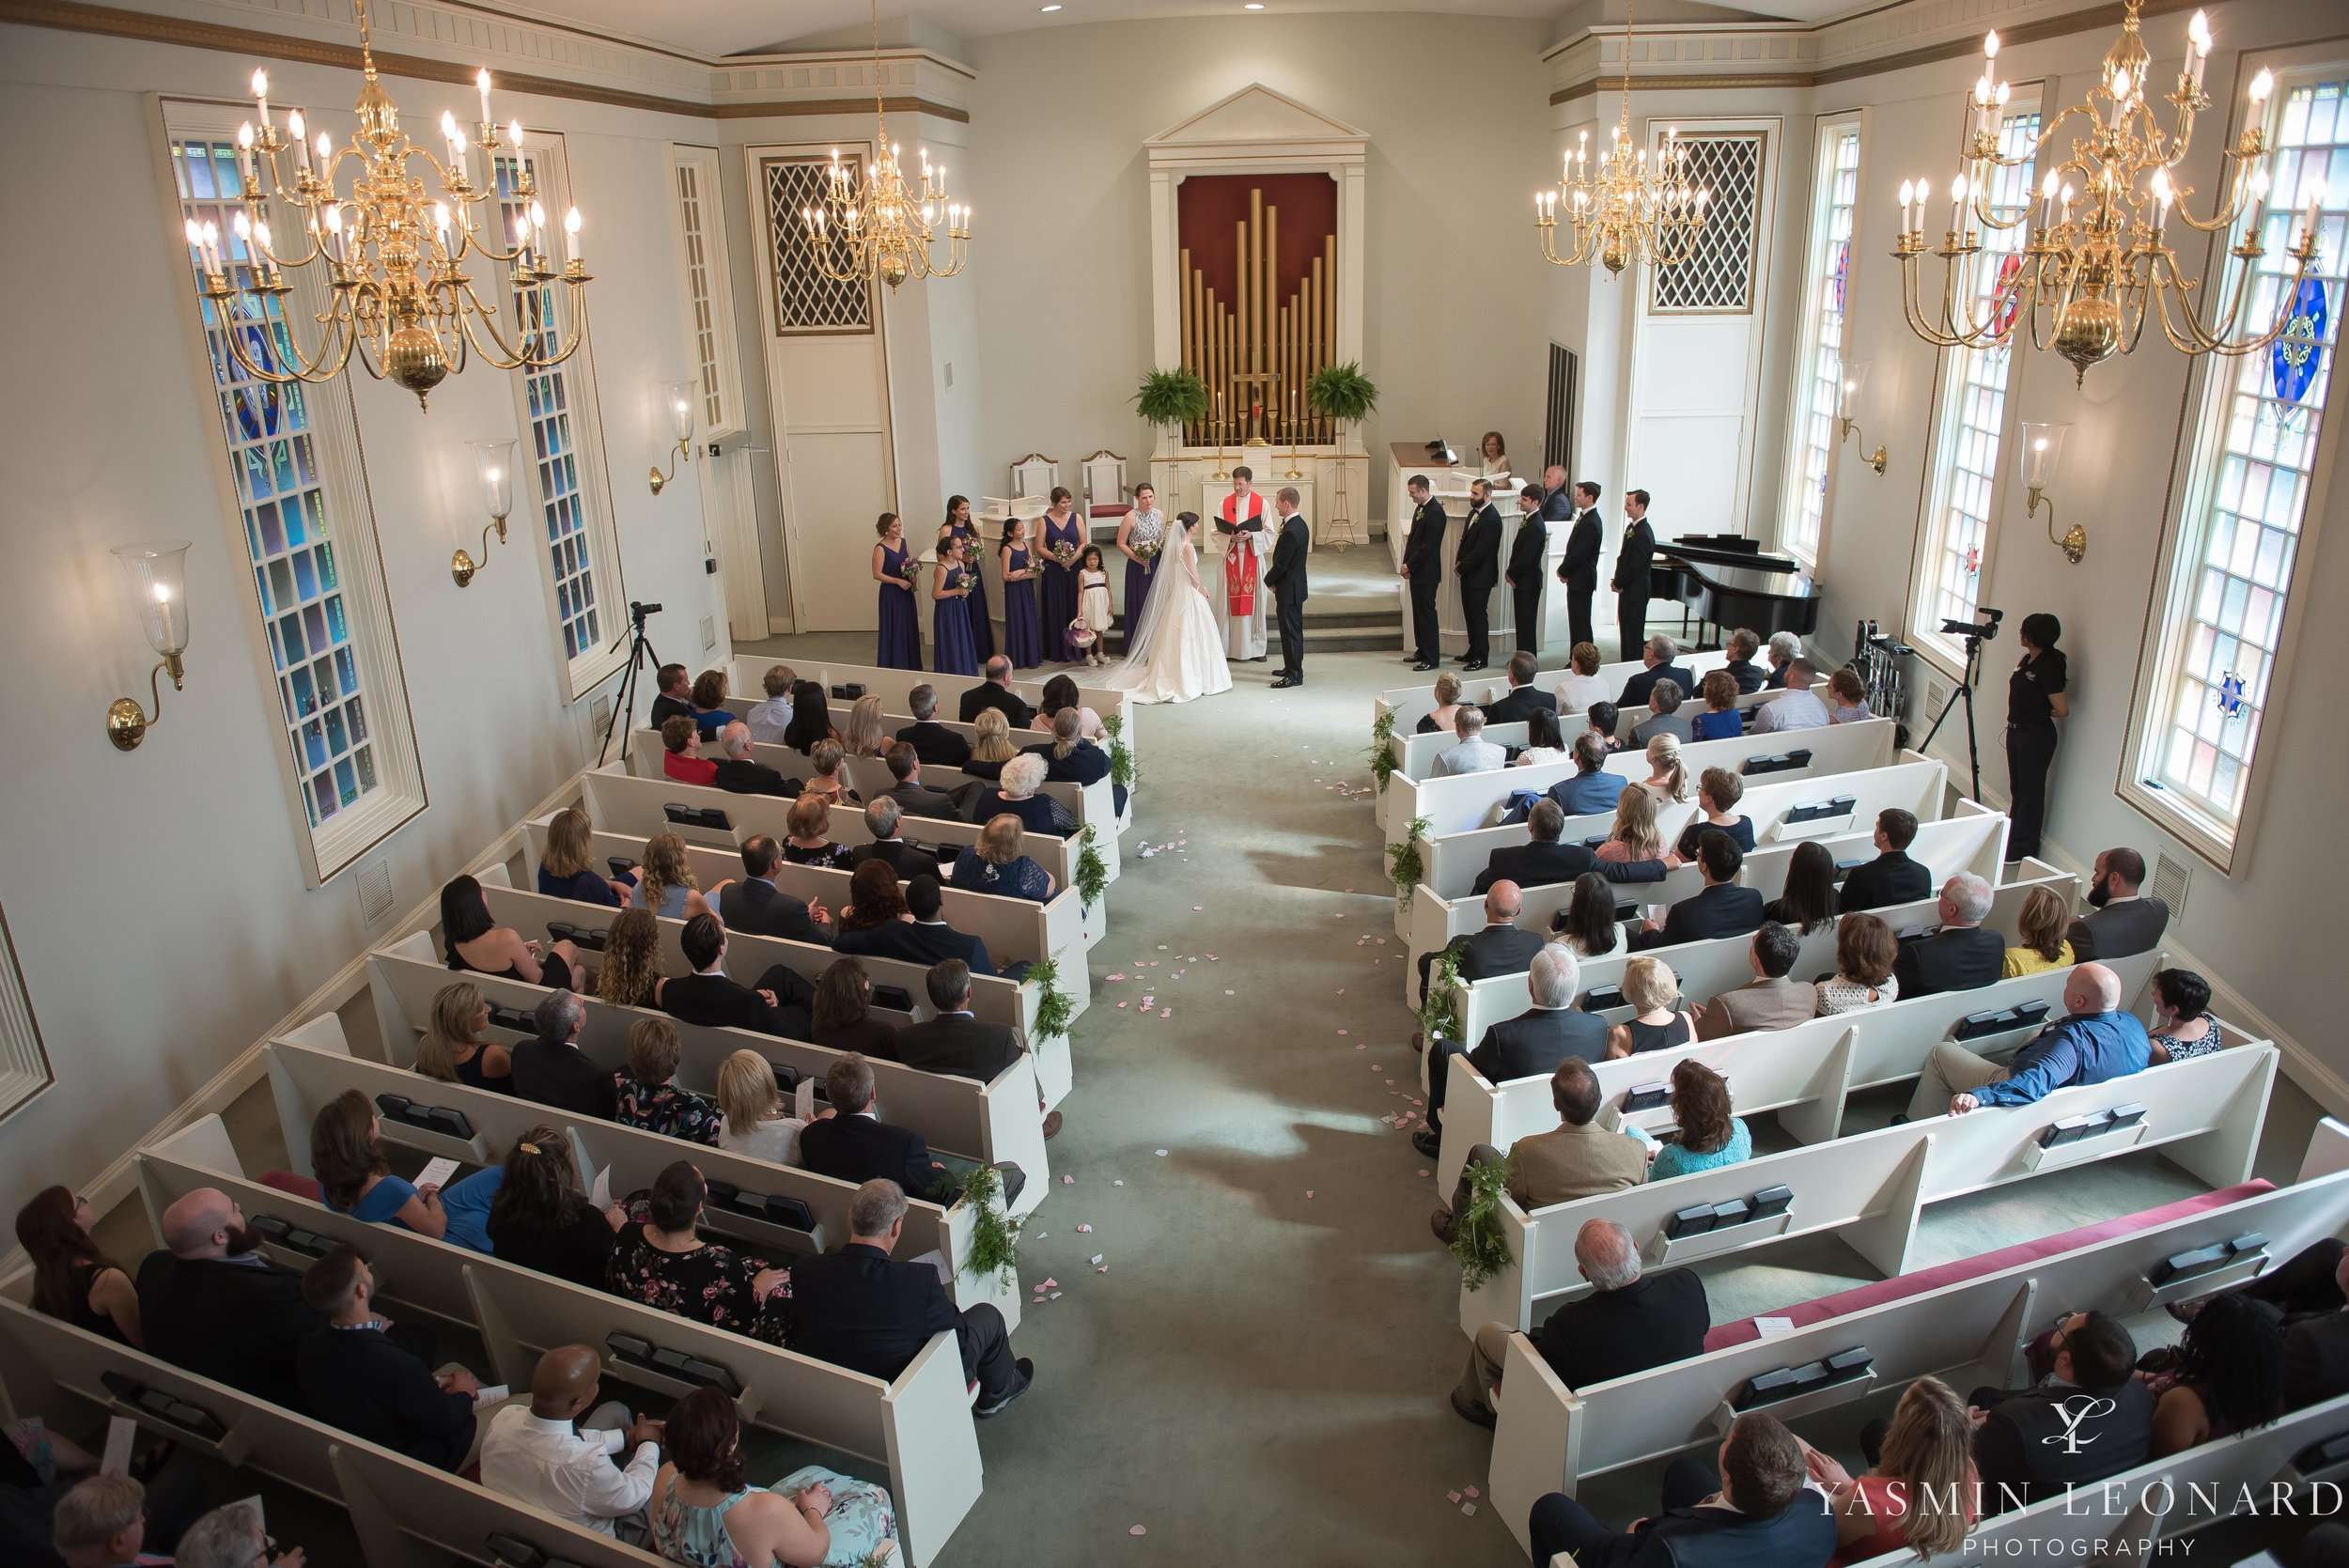 JH ADAMS INN - HIGH POINT UNIVERSITY CHAPEL WEDDING - HPU CHAPEL - HIGH POINT WEDDINGS - NC WEDDING PHOTOGRAPHER - YASMIN LEONARD PHOTOGRAPHY - HIGH POINT NC - HIGH POINT WEDDINGS -29.jpg